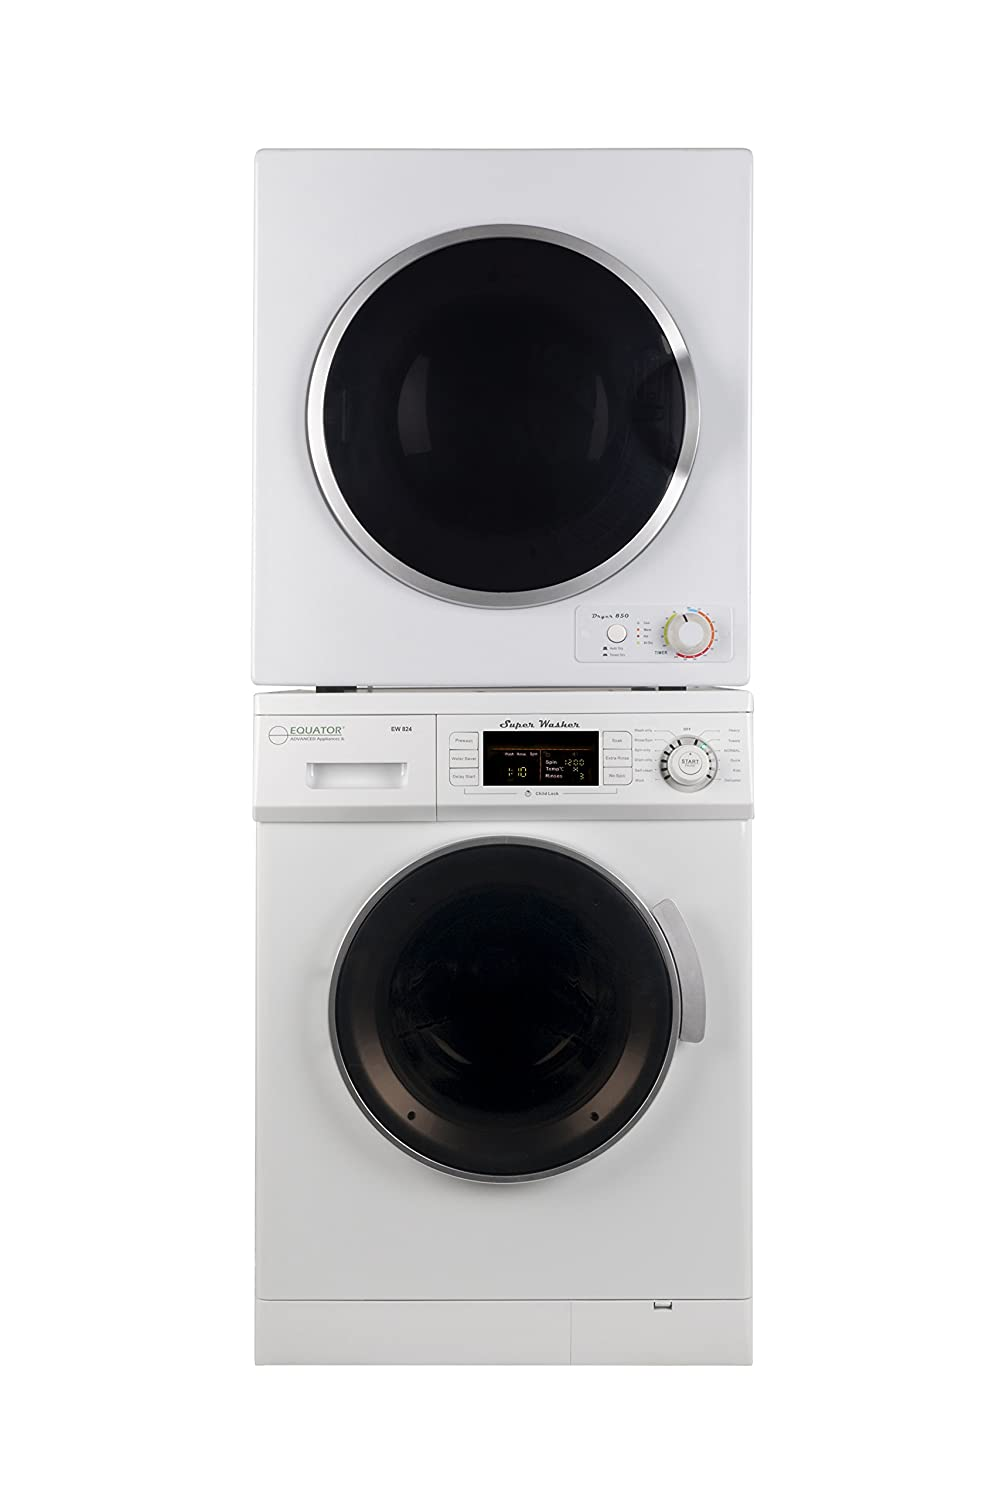 Equator Stackable set of 1.6 cu.ft. Compact Washer and 3.5 cu.ft. Electric Short Dryer in White